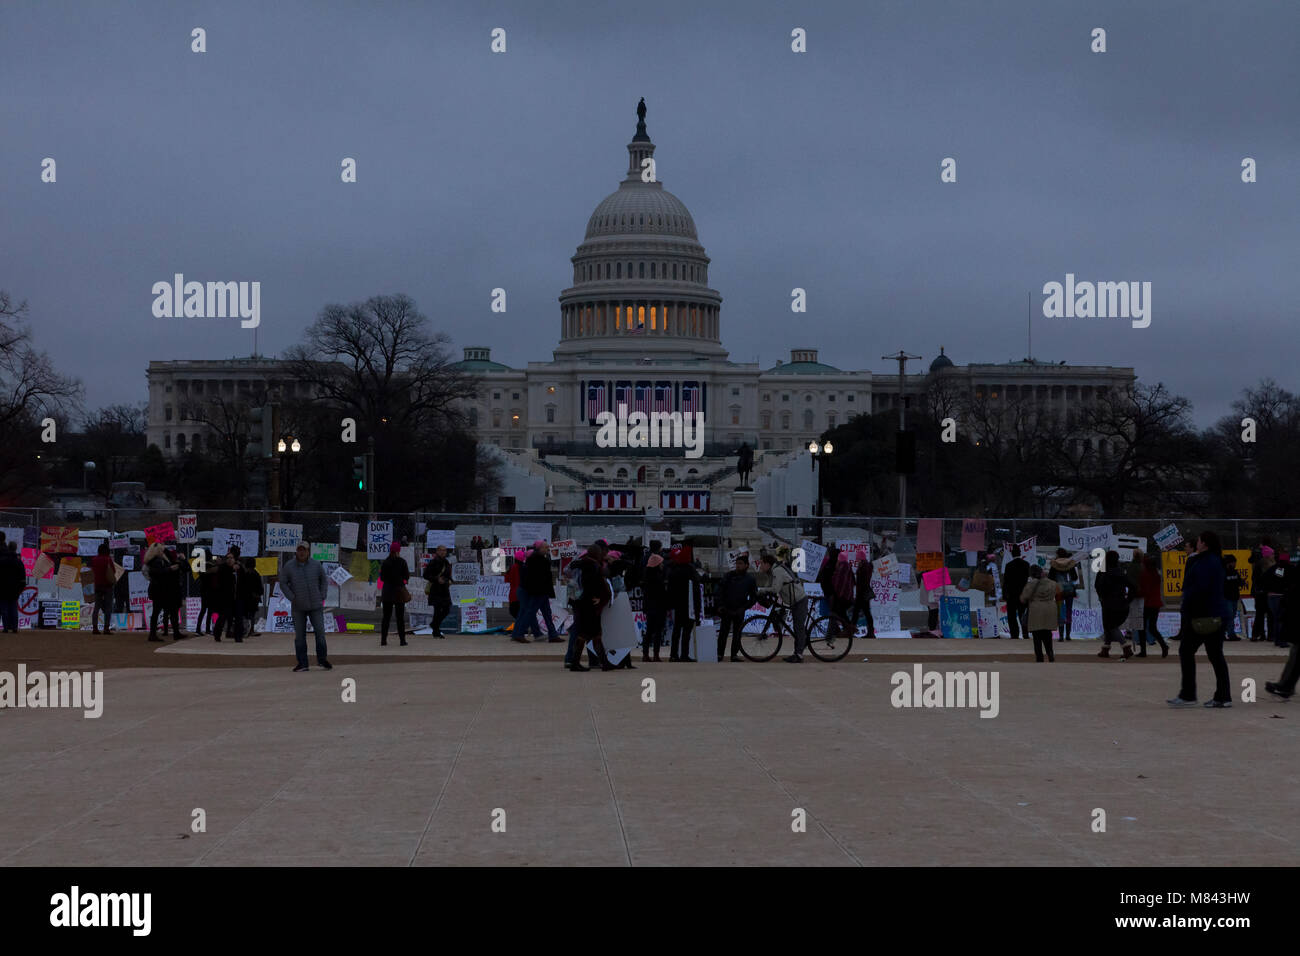 Women's March 2017 Protesters outside U.S. Capitol Building - Stock Image